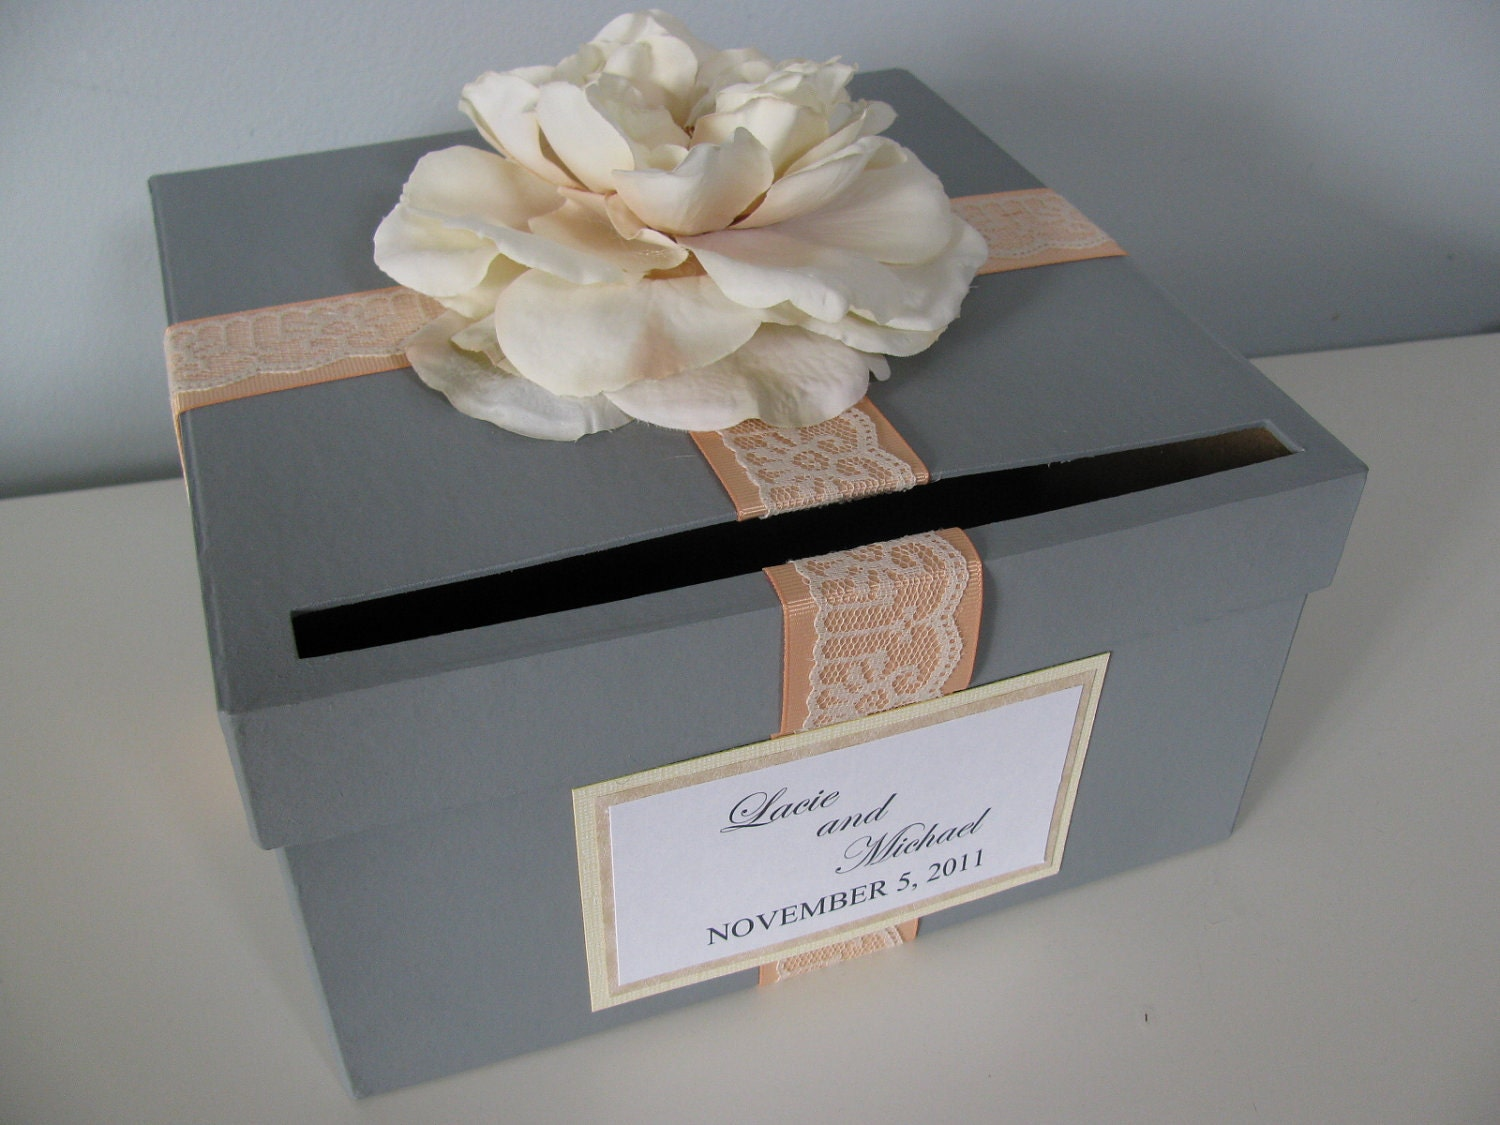 Wedding Shower Gift Card Box : to Card Box Bridal Shower Engagement Anniversary Wedding Card Box ...